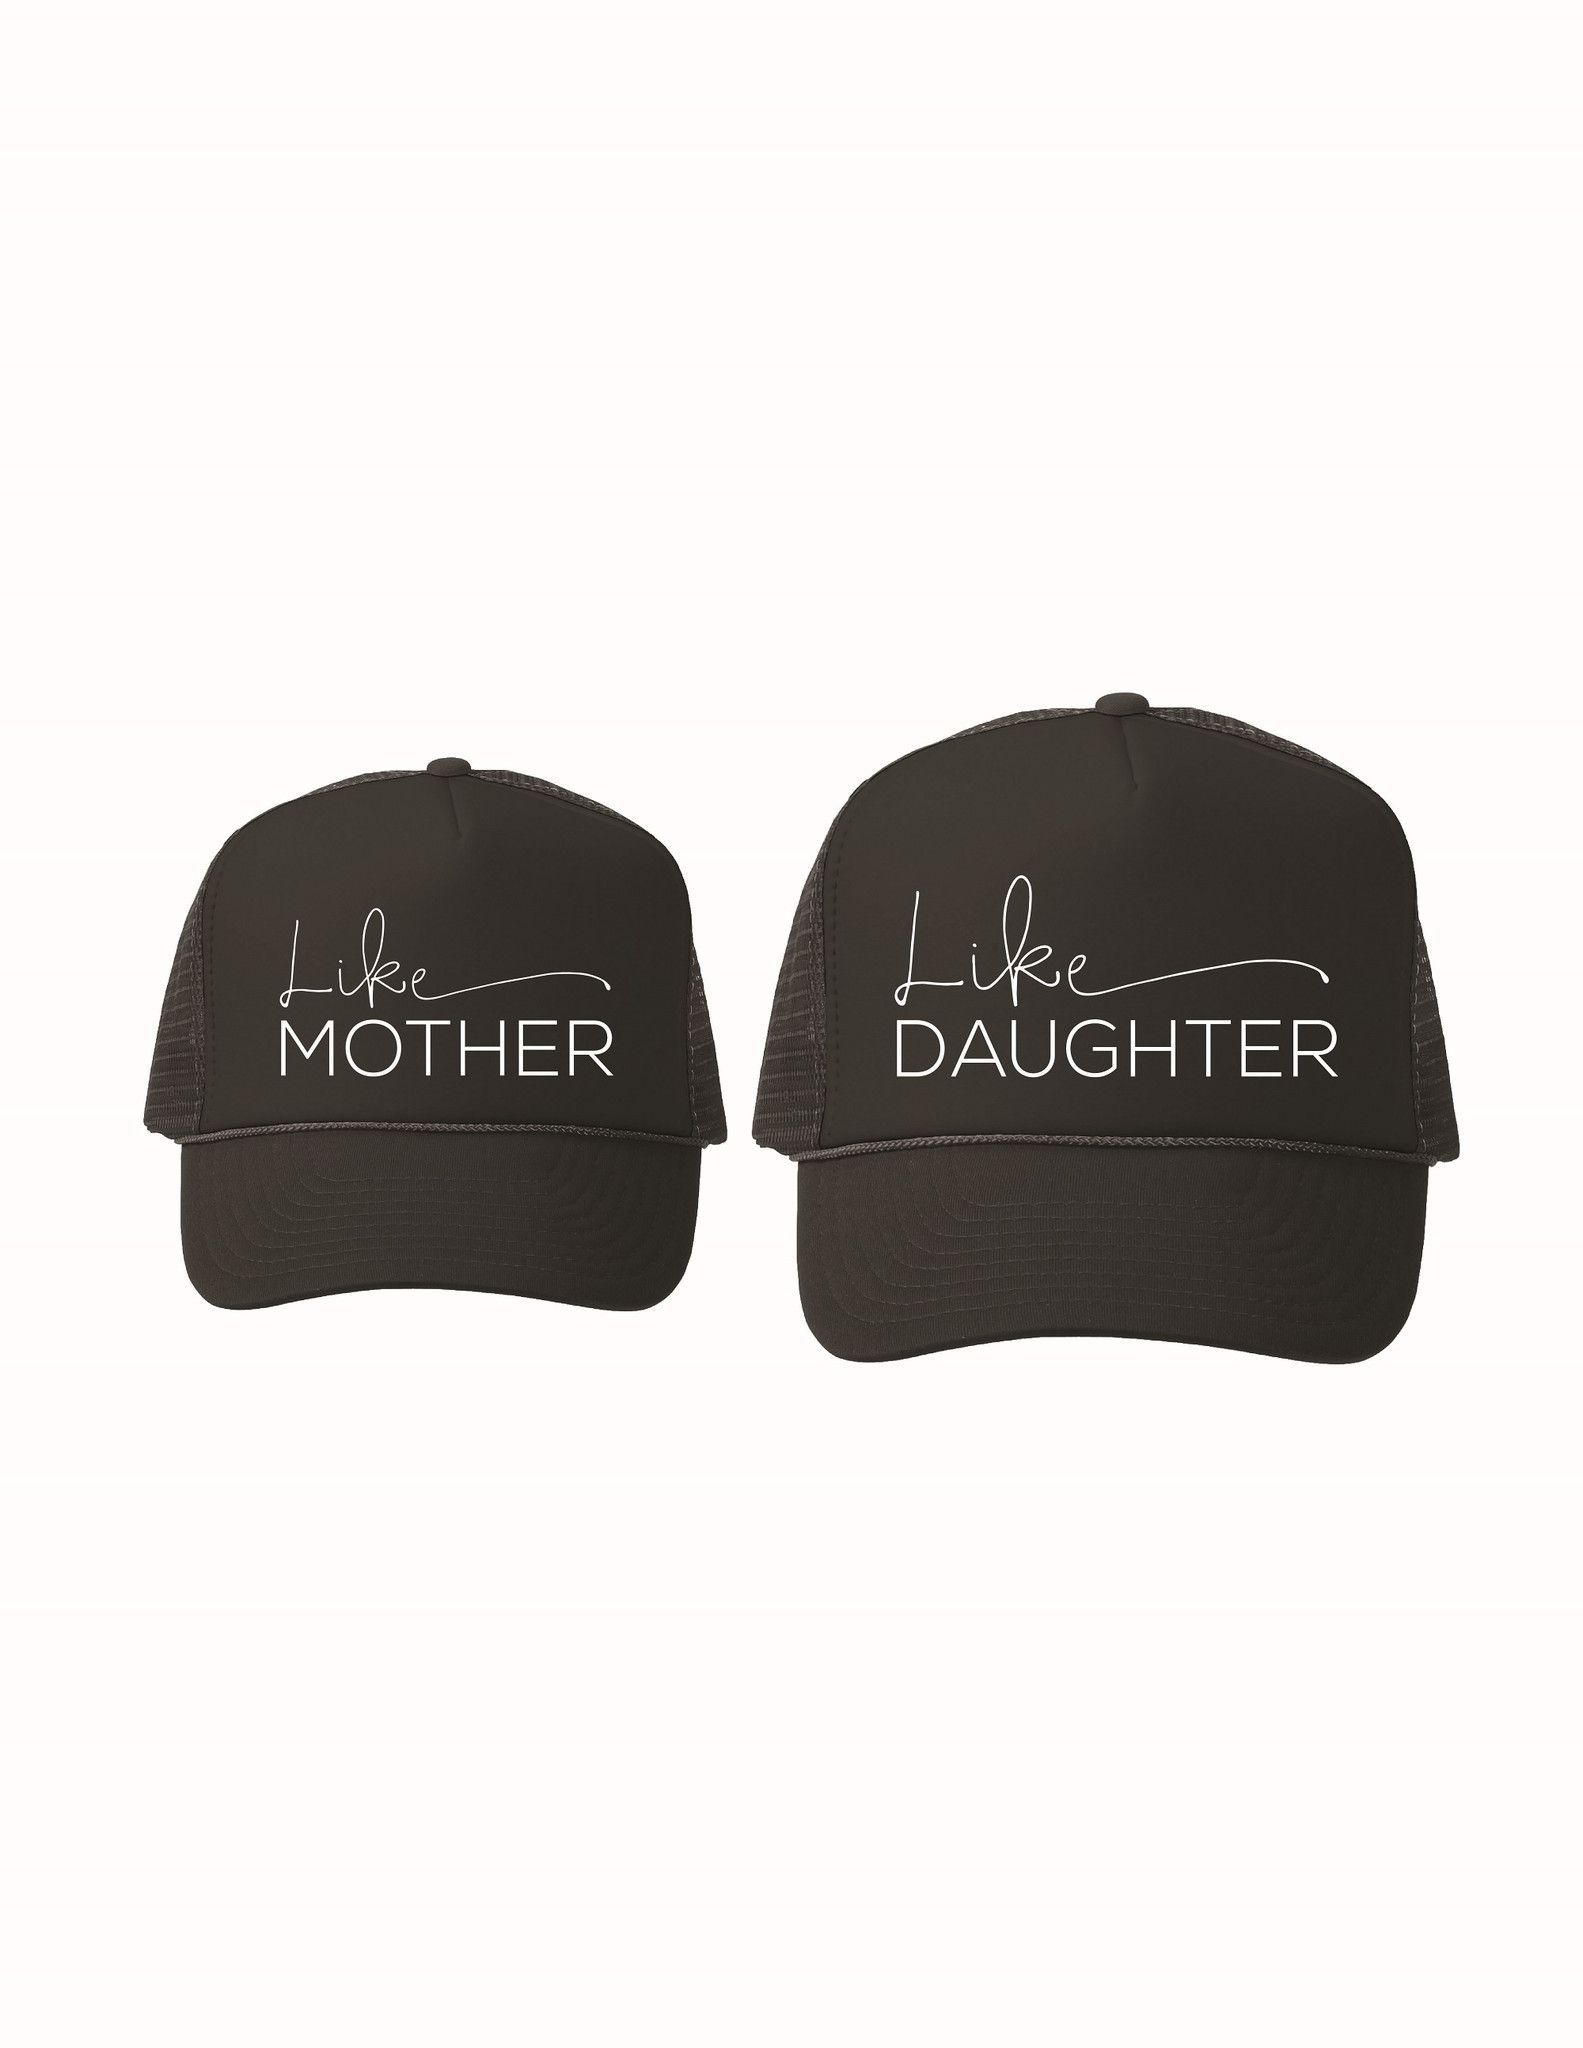 8d886ed96f0cb Like Mother Like Daughter Hat Set Black Trucker Hat